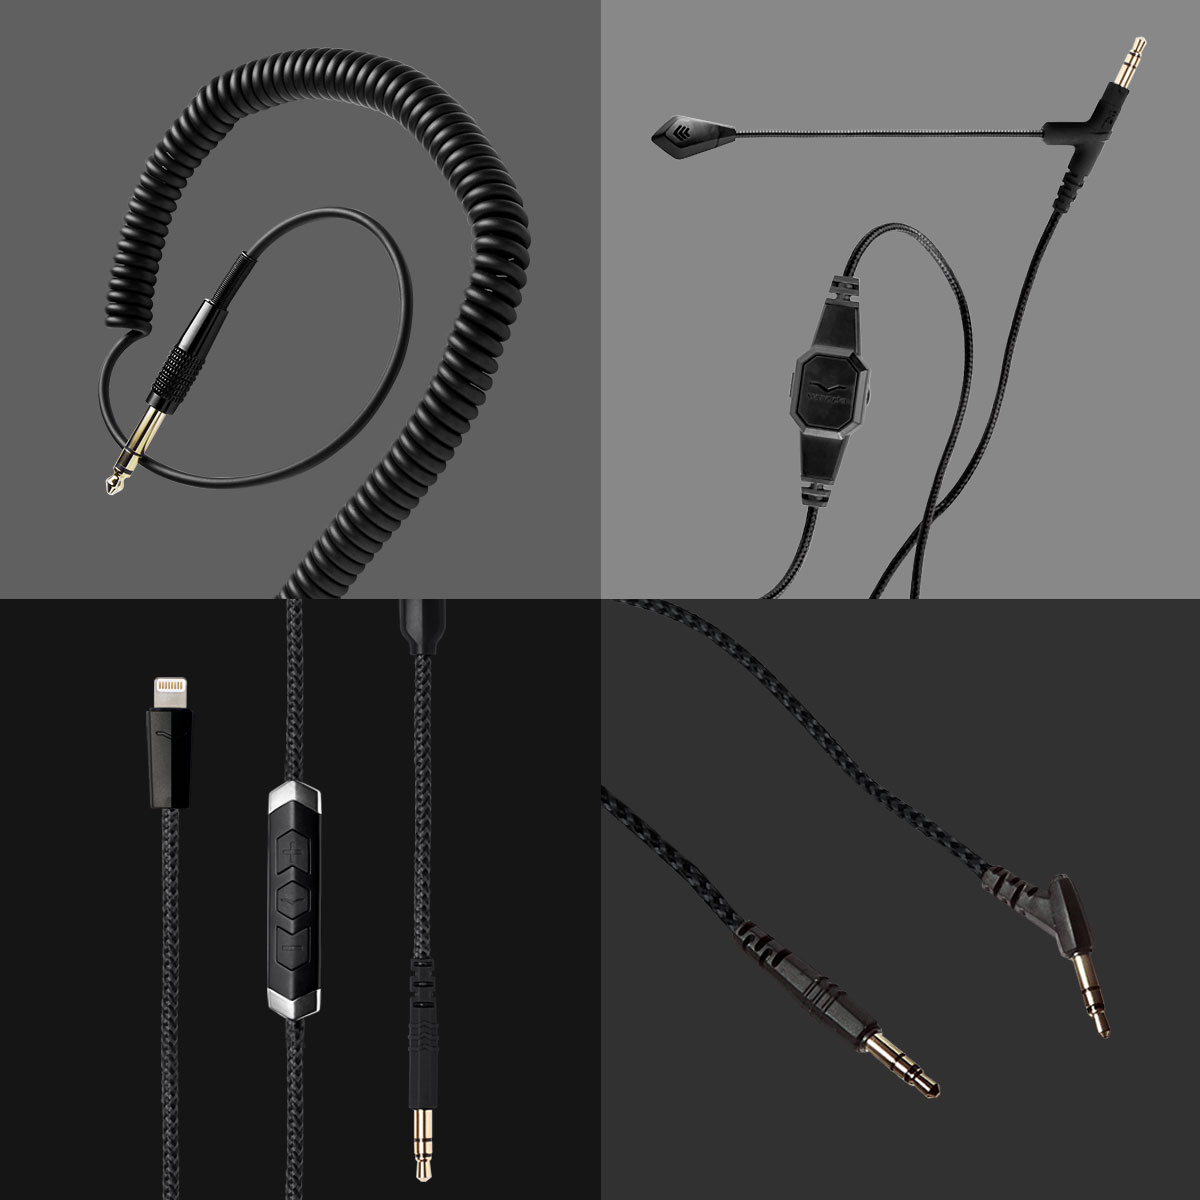 Optional extra cables for the Crossfade M-100 Master